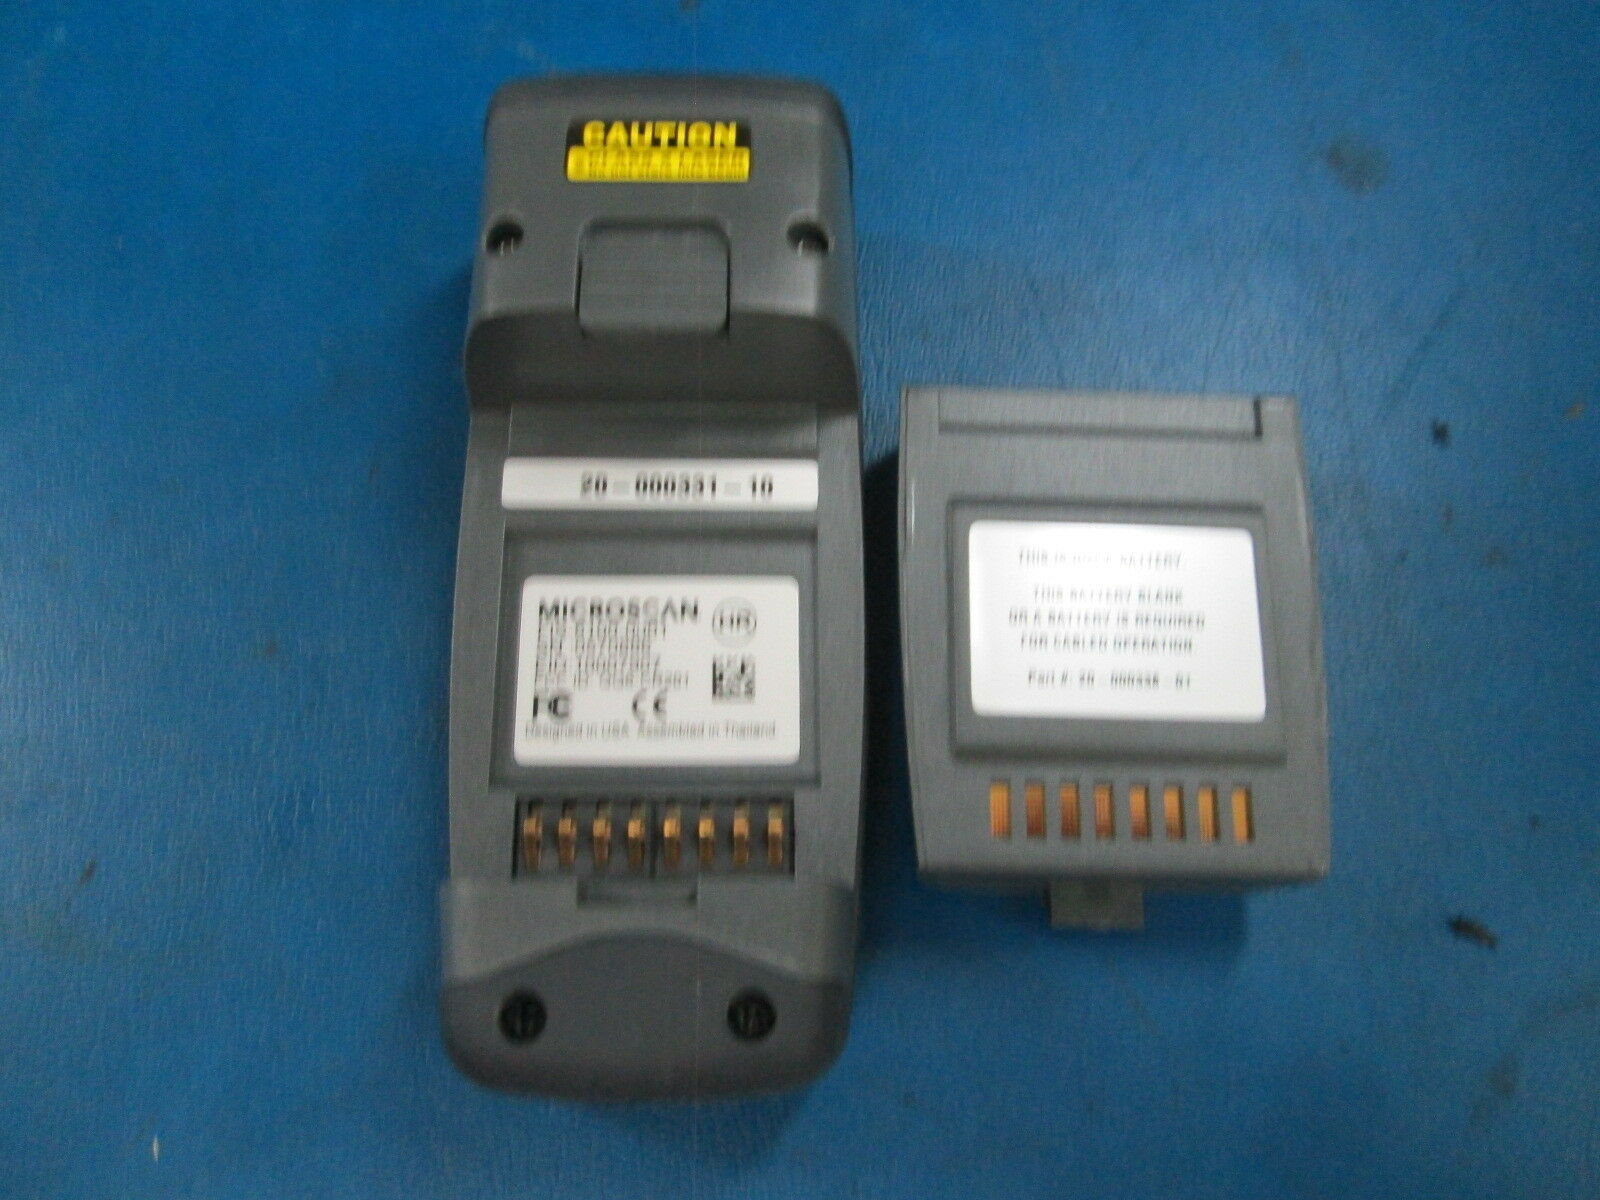 Microscan Quadrus Ms-q Imager Scanner Barcode Reader Fis-6100-0001 ...